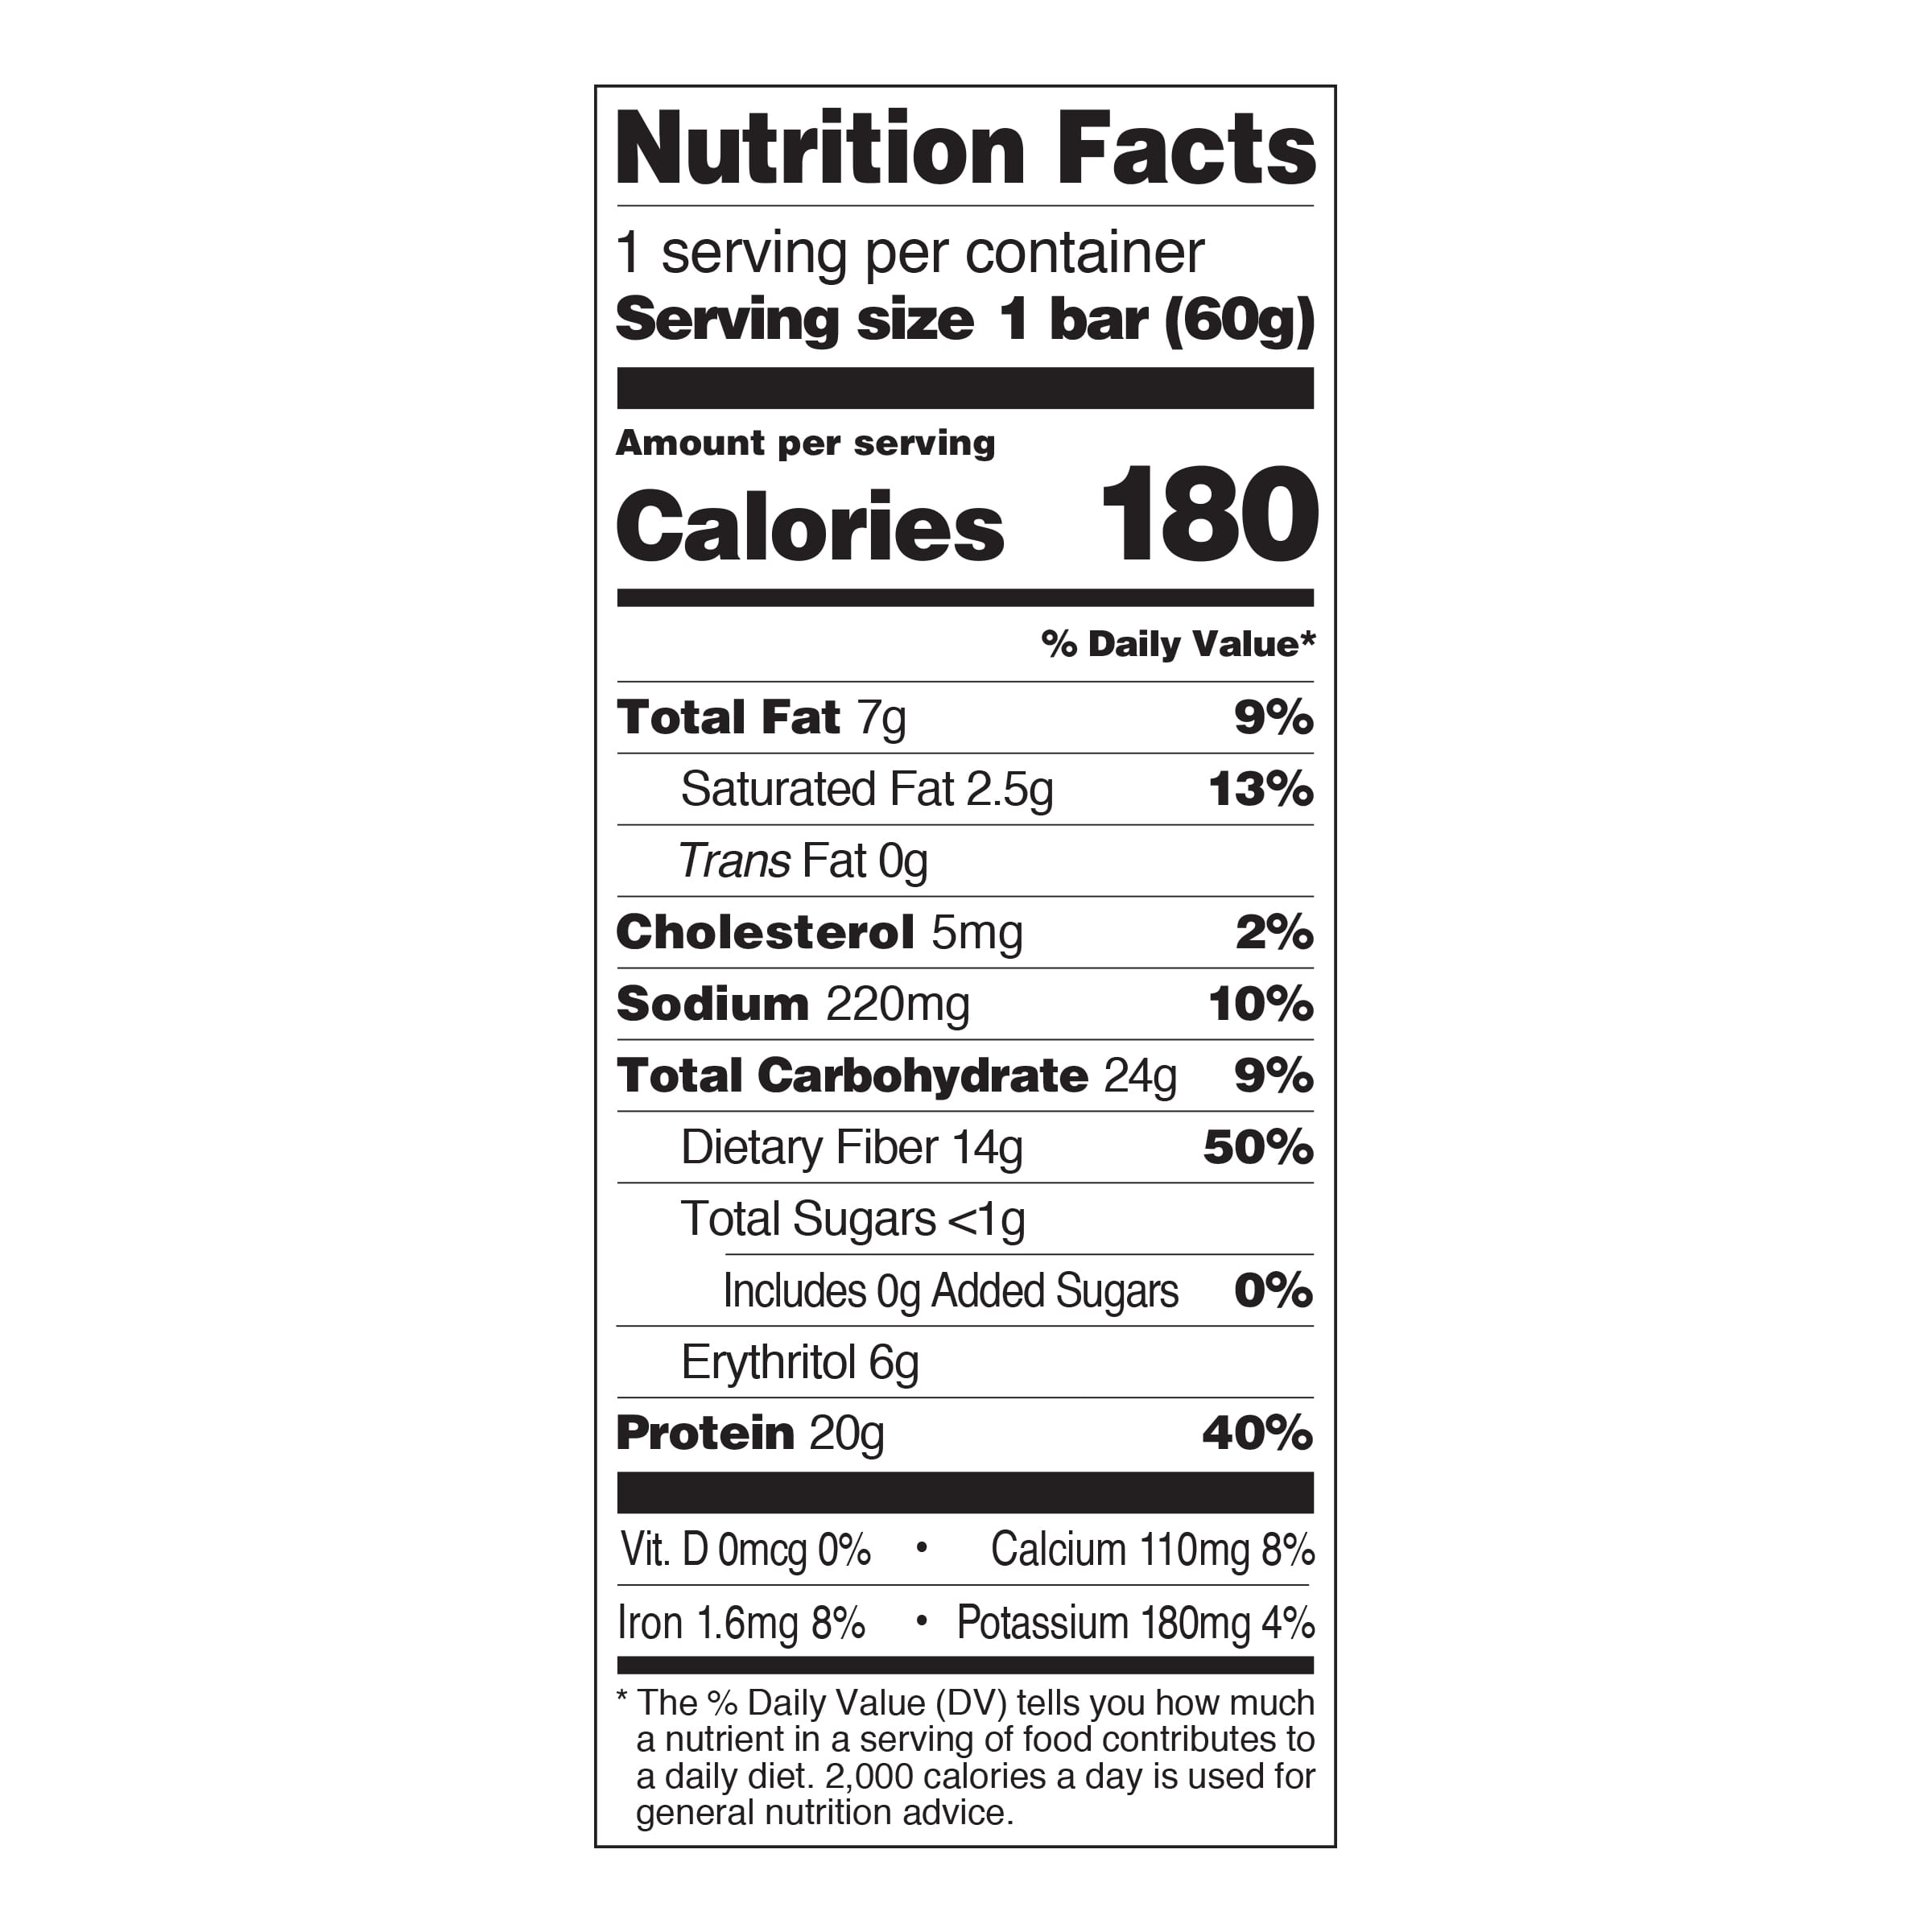 Double Chocolate Chunk Nutrition